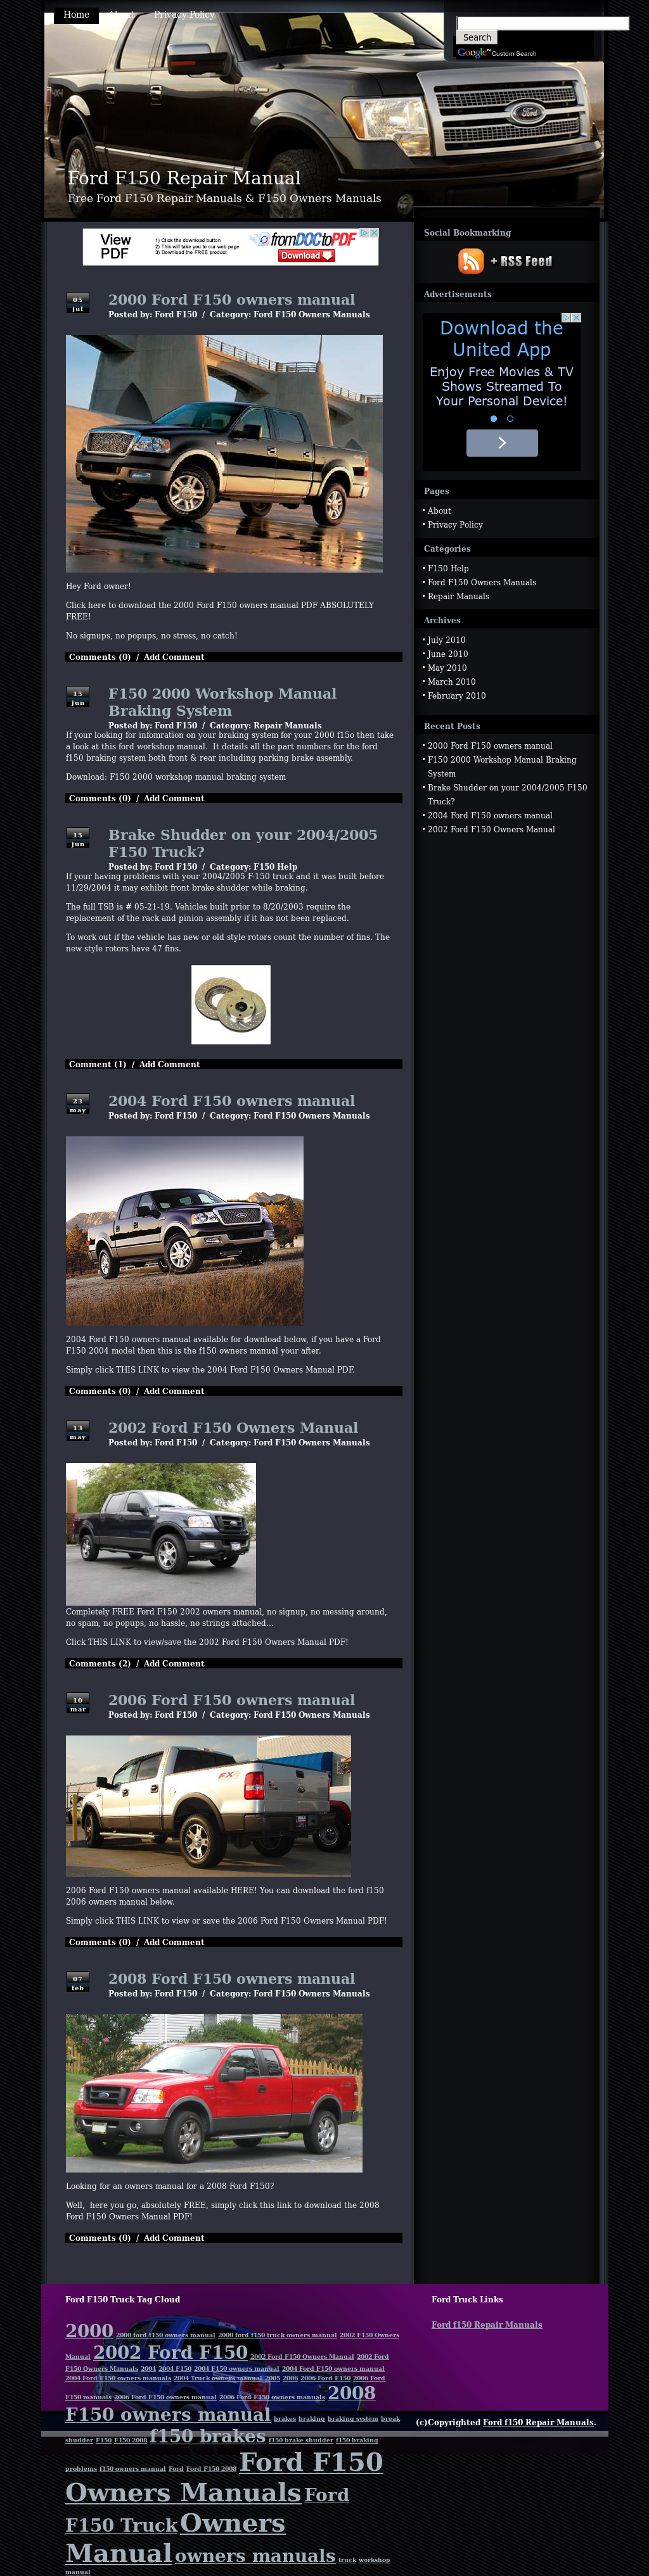 Ed Ford F150 Repair Manuals Competitors, Revenue and Employees - Owler  Company Profile